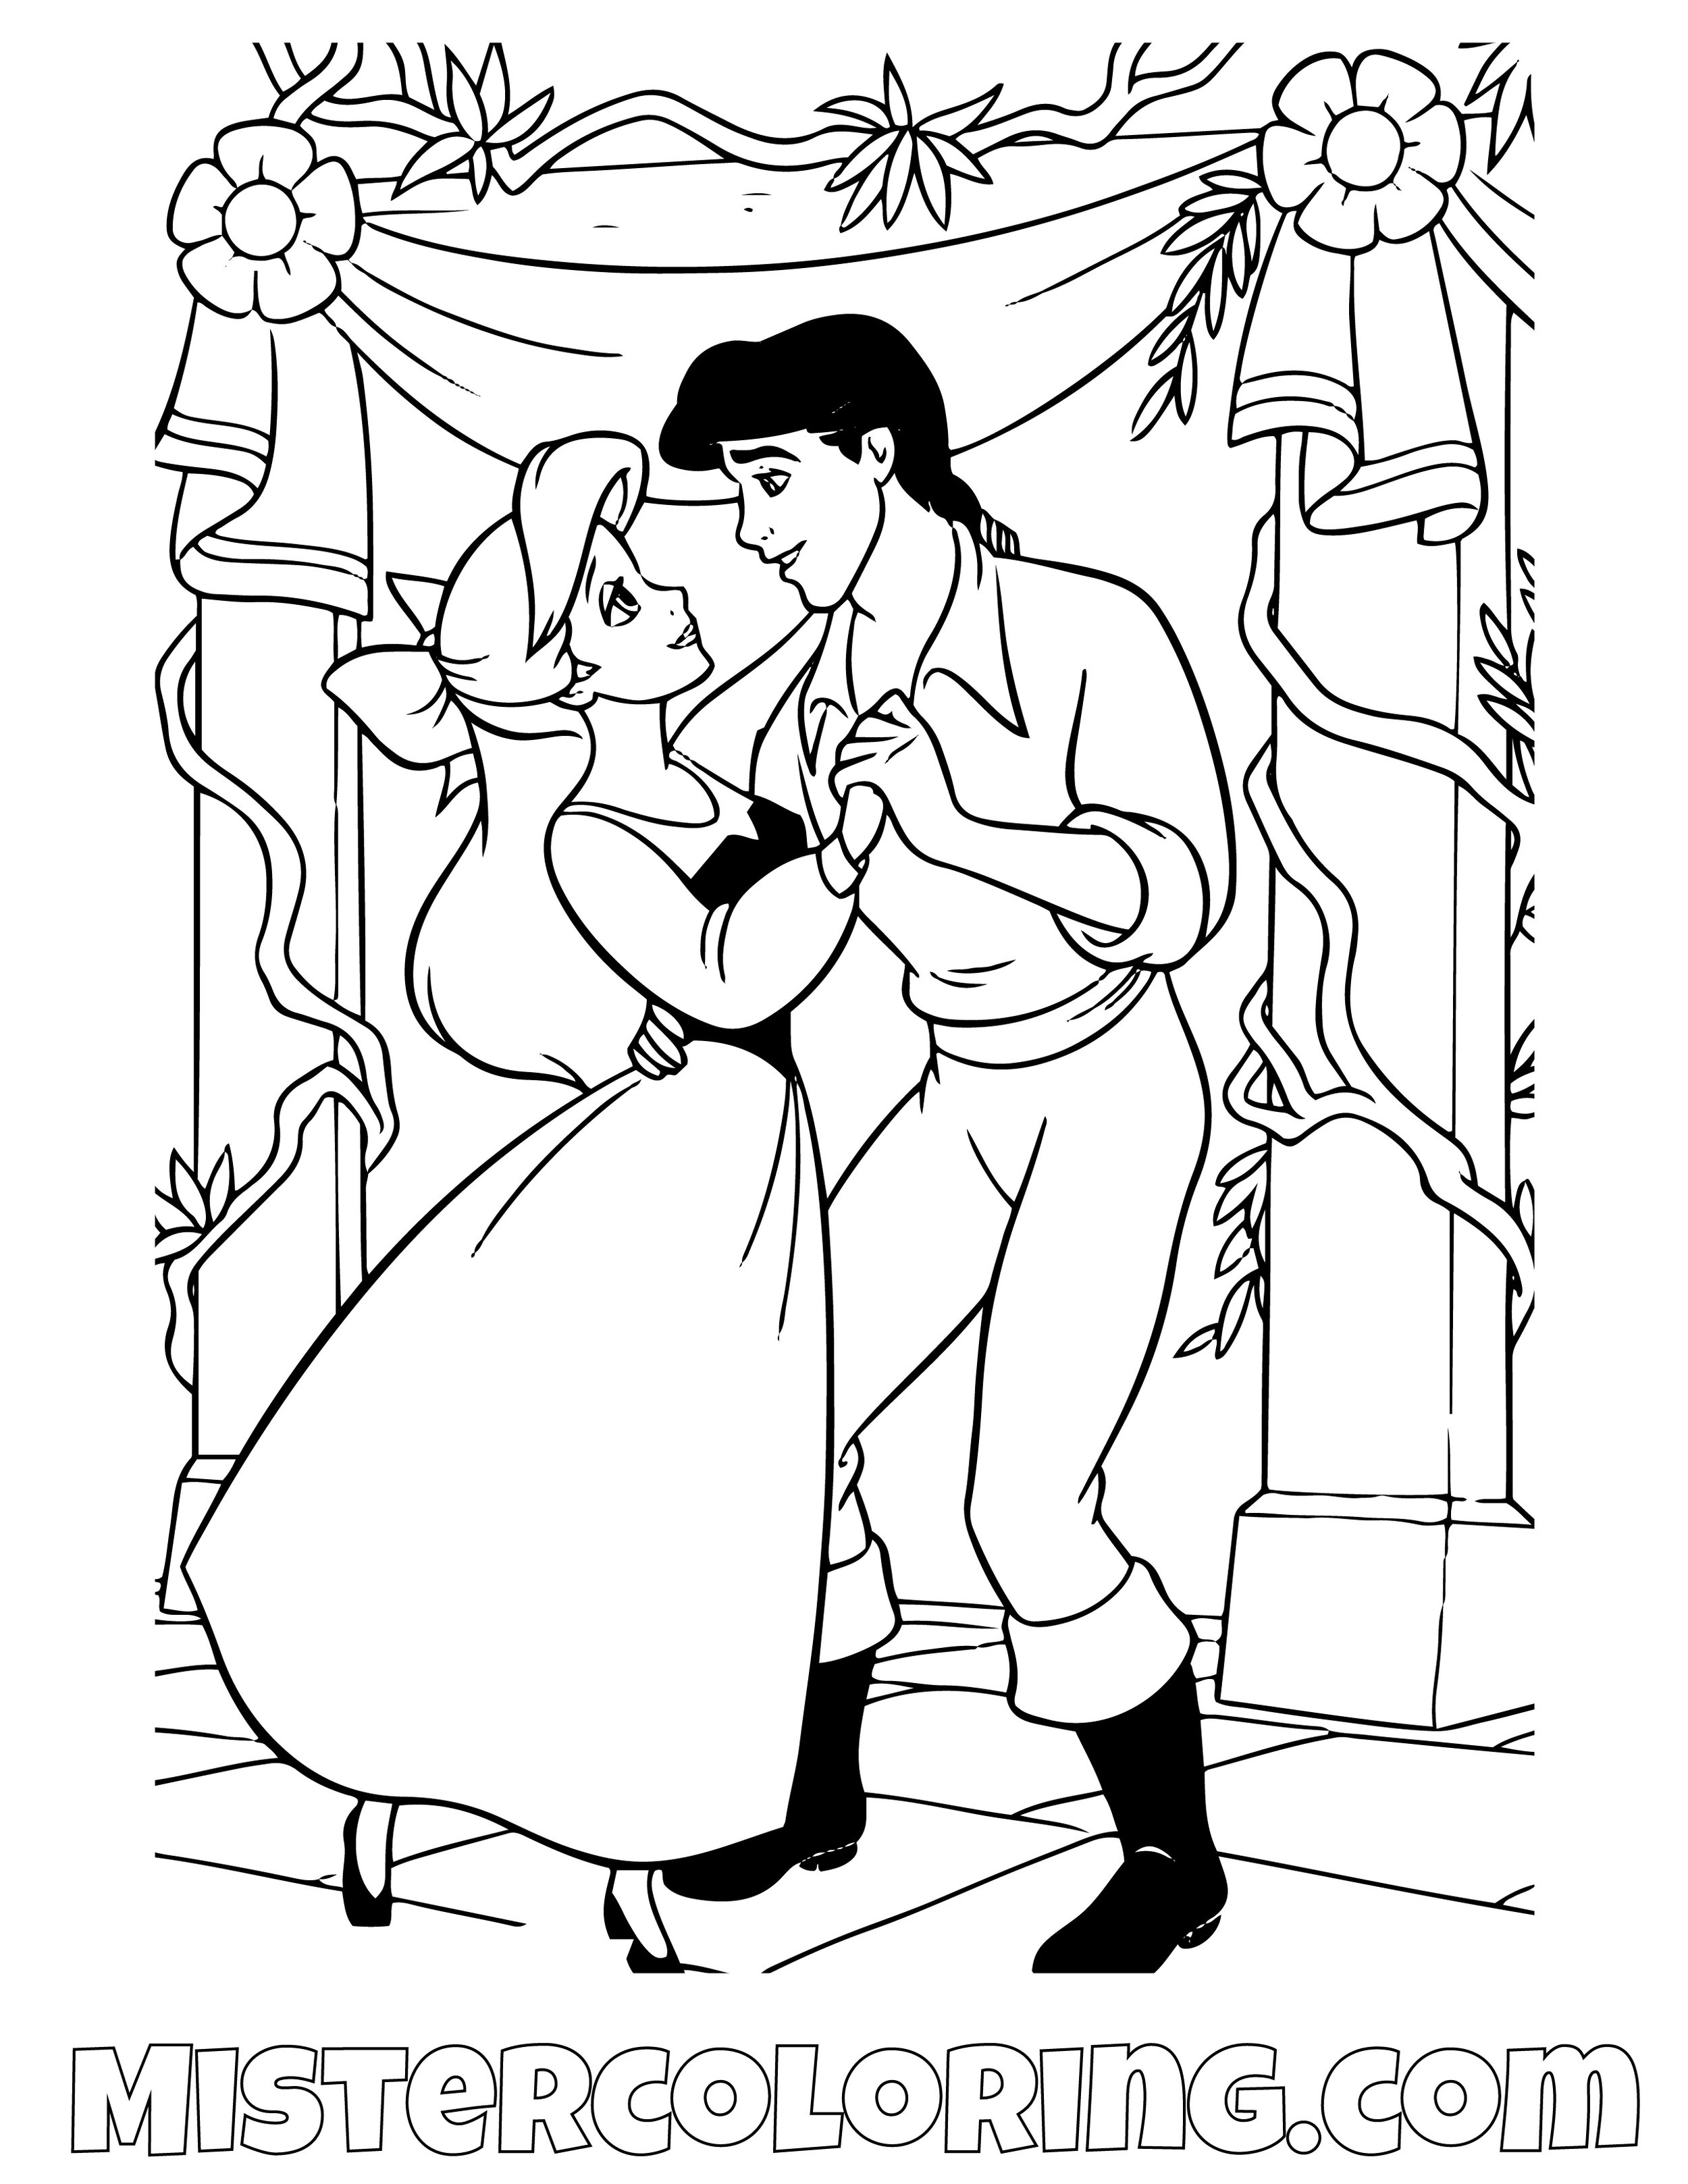 The Little Mermaid Coloring Pages Mister Coloring